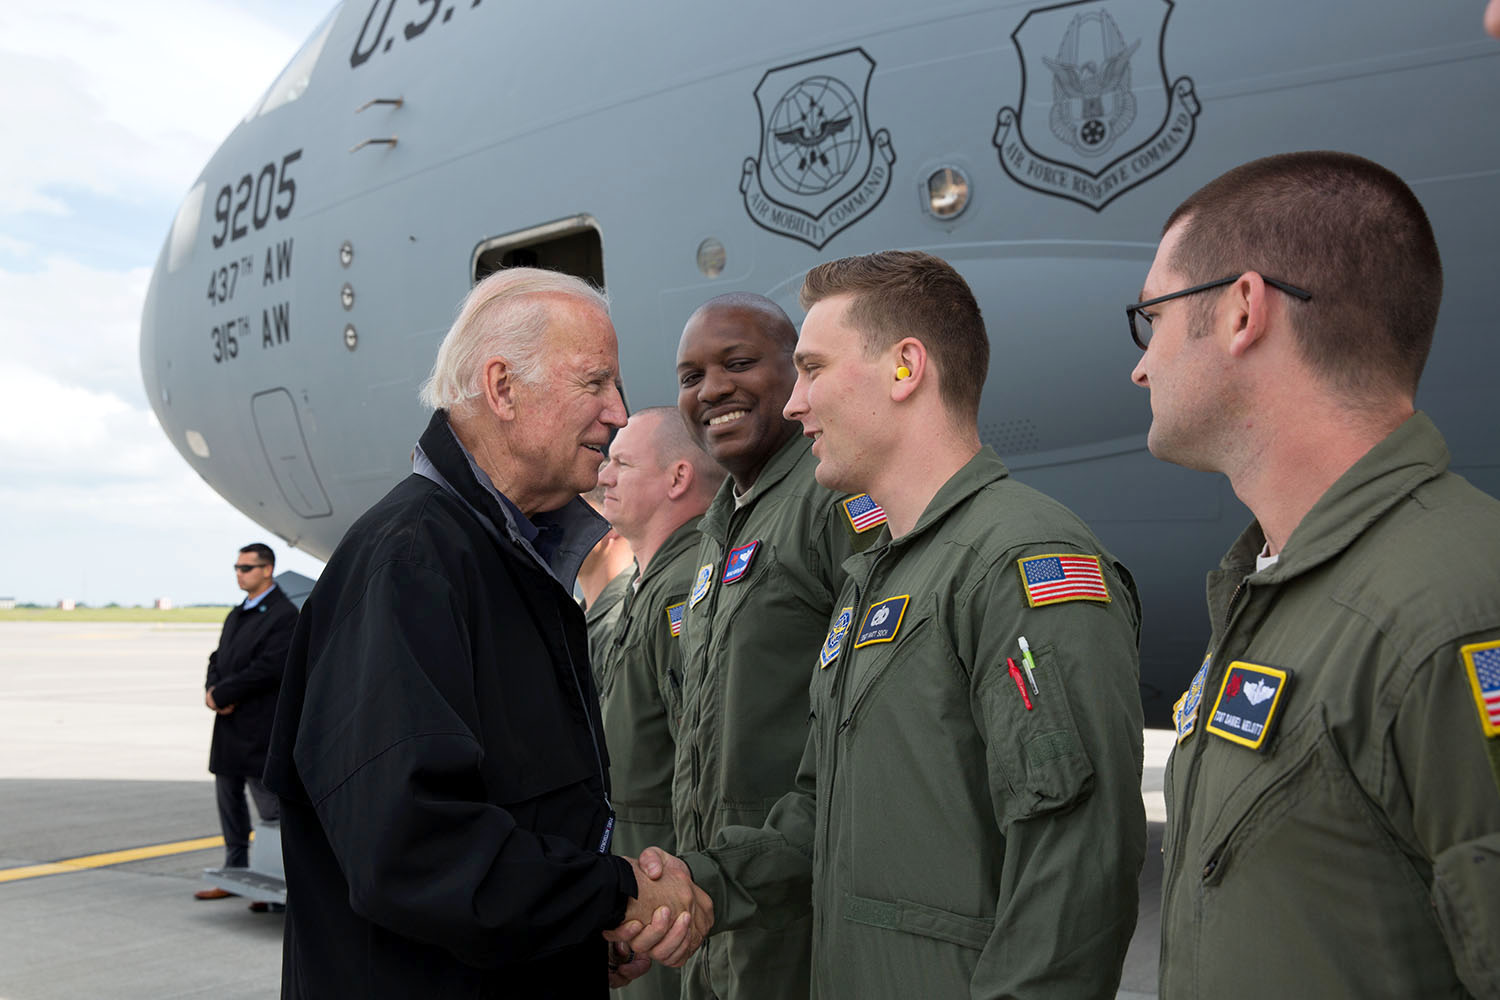 Vice President Joe Biden shakes hands with crew members outside a C-17 serving as Air Force Two, at Dublin International Airport, in Dublin Ireland, June 23, 2016. (Official White House Photo by David Lienemann)